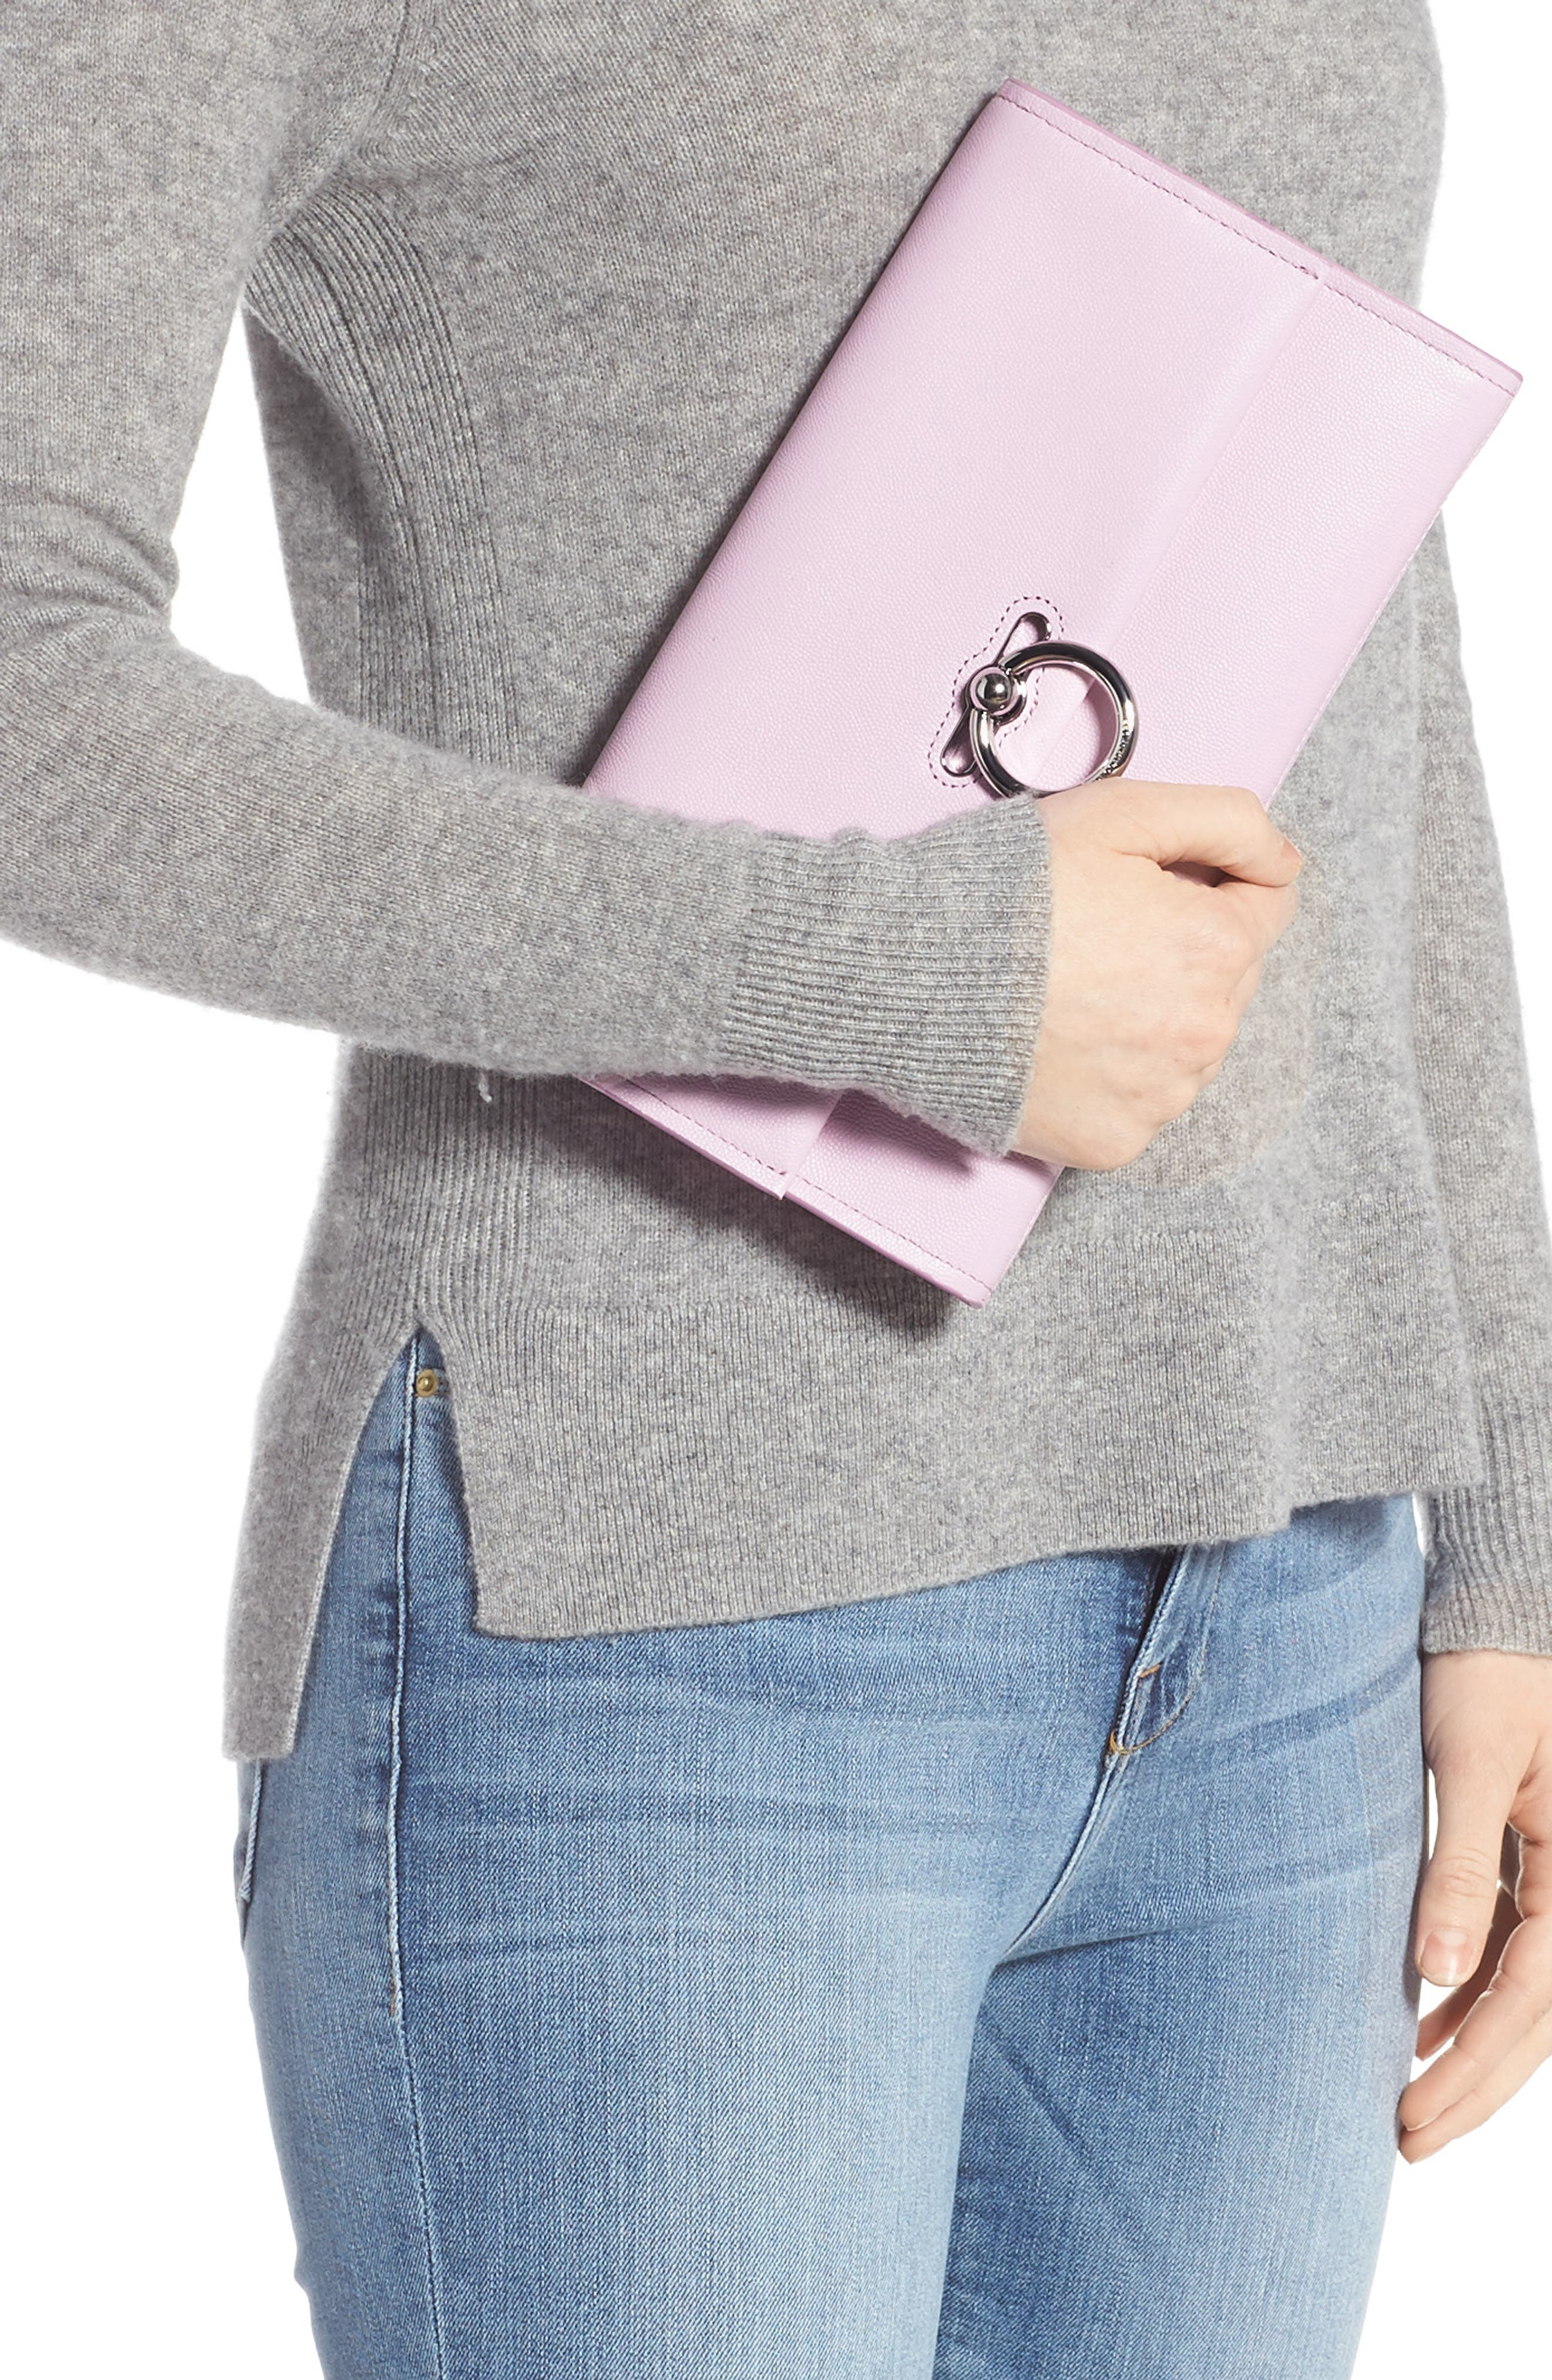 REBECCA MINKOFF, Jean Leather Clutch, Alternate thumbnail 2, color, LIGHT ORCHID